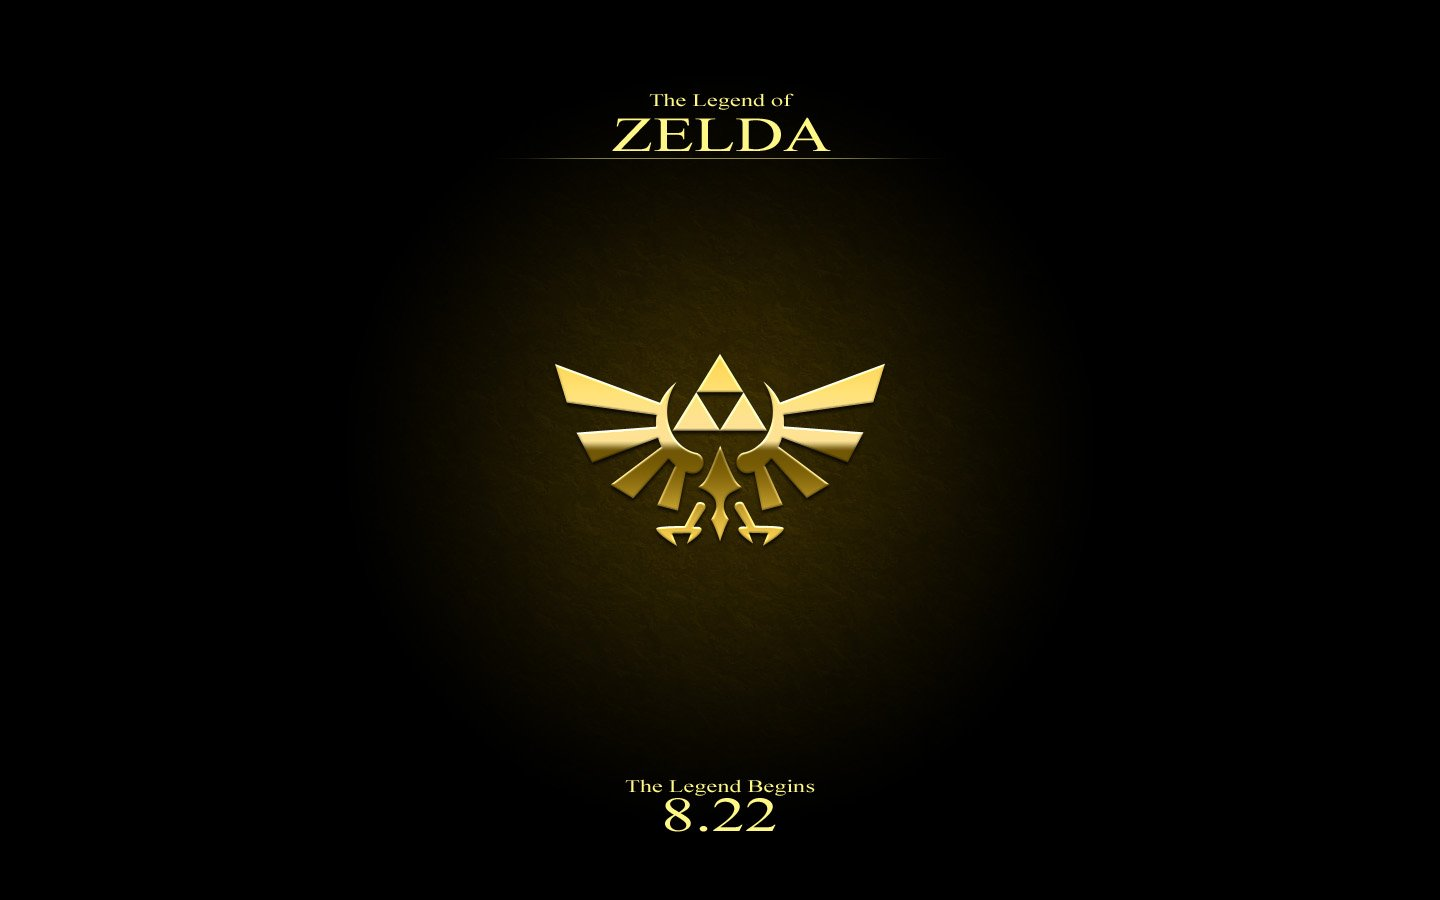 zelda wallpaper hd wallpapersafari